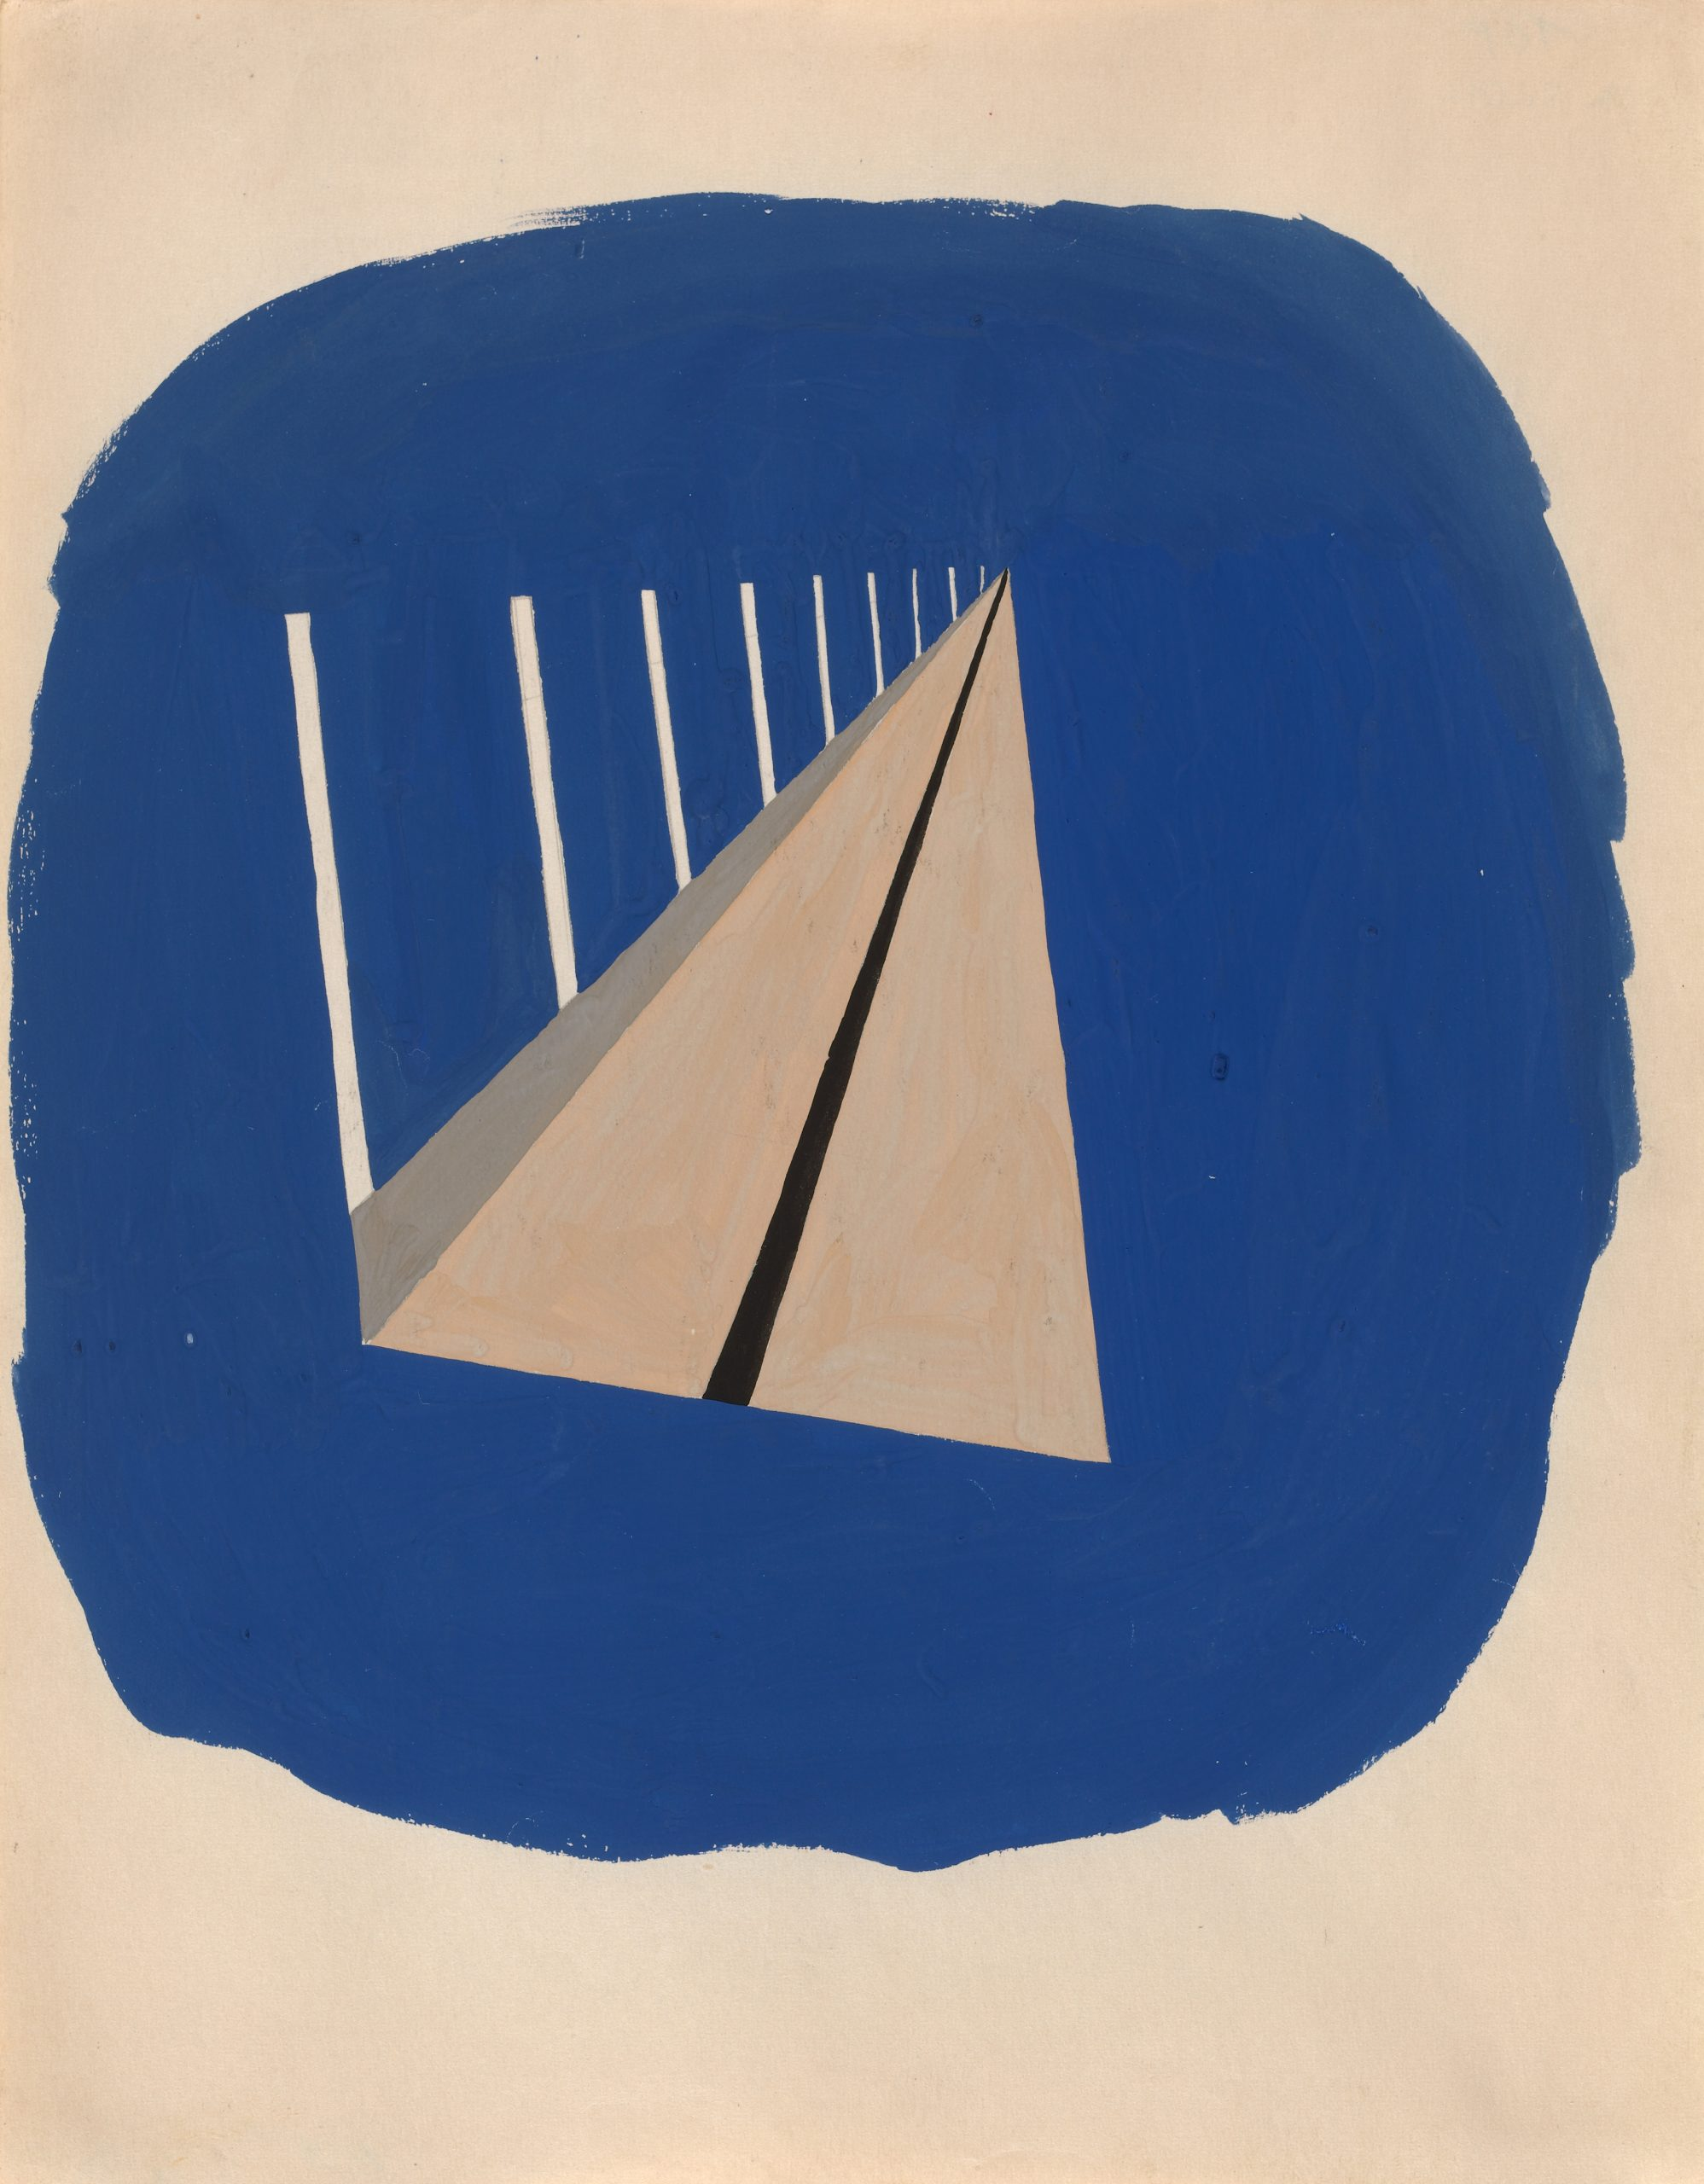 A beige triangle with verticle white lines, illustrating a bridge rushing off into the distance, is centered inside a roughly painted blue circle.